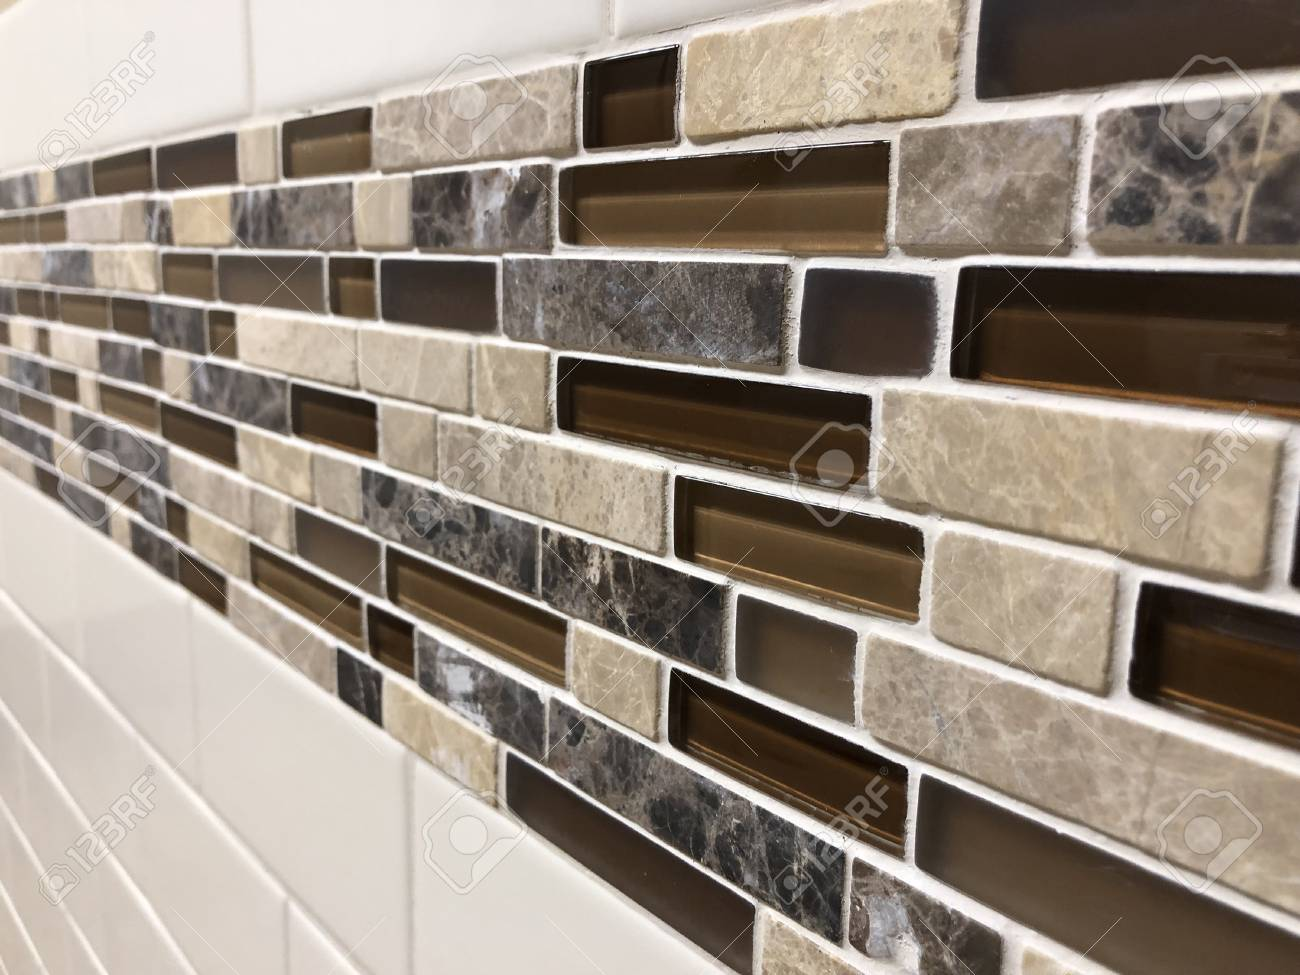 Beautiful glass and ceramic tiles in various sizes installed..